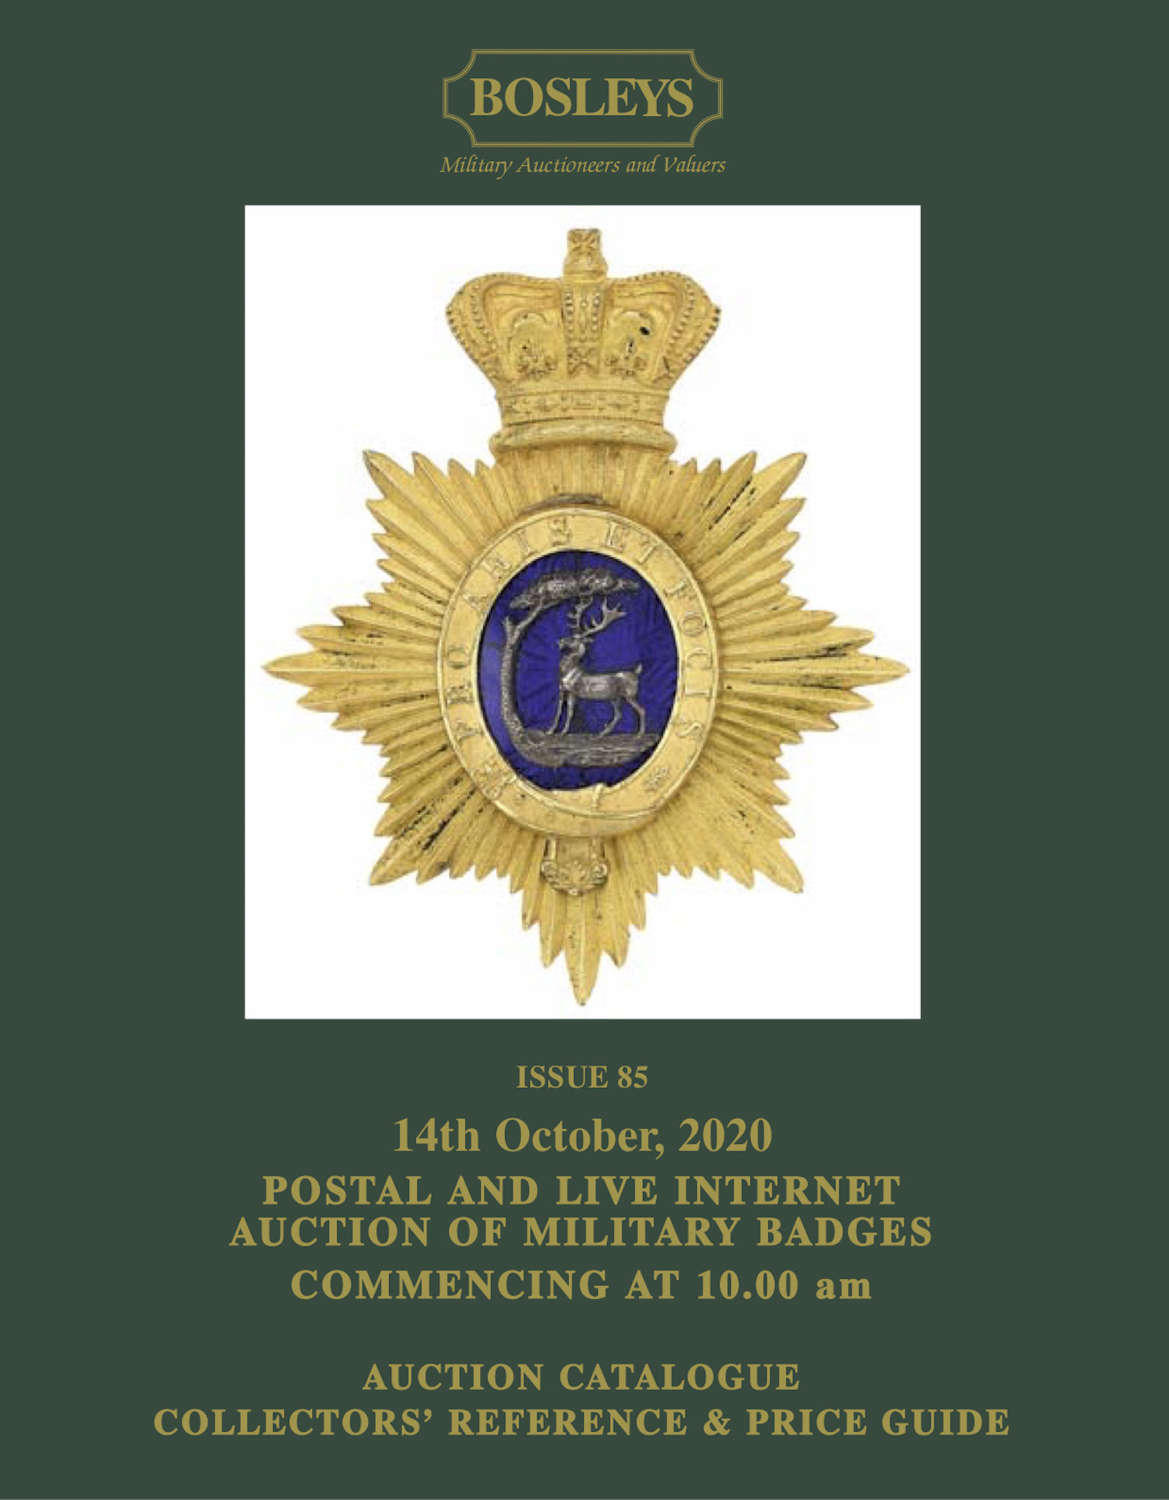 ORIGINAL MILITARY BADGES, TITLES & FORMATION SIGNS OCTOBER 2020